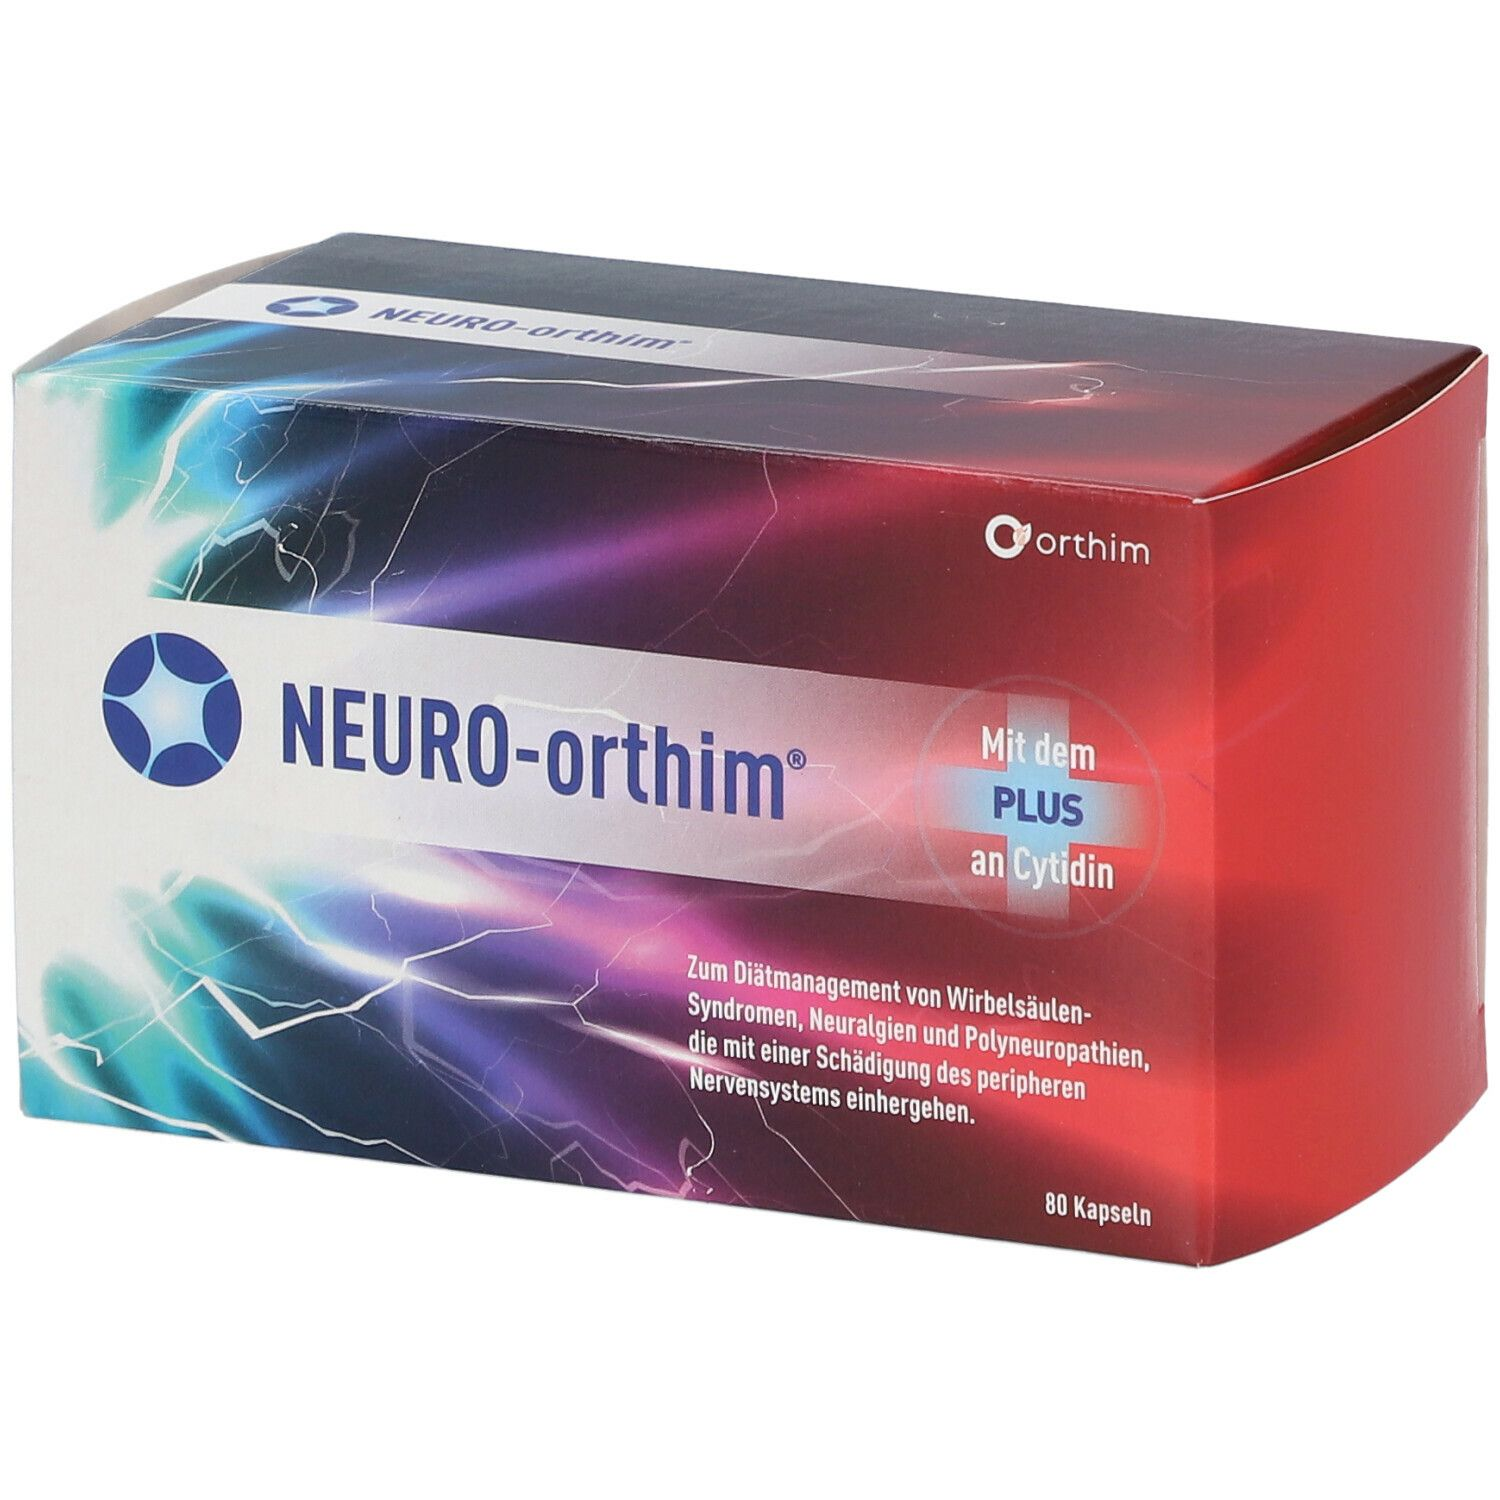 NEURO-orthim®